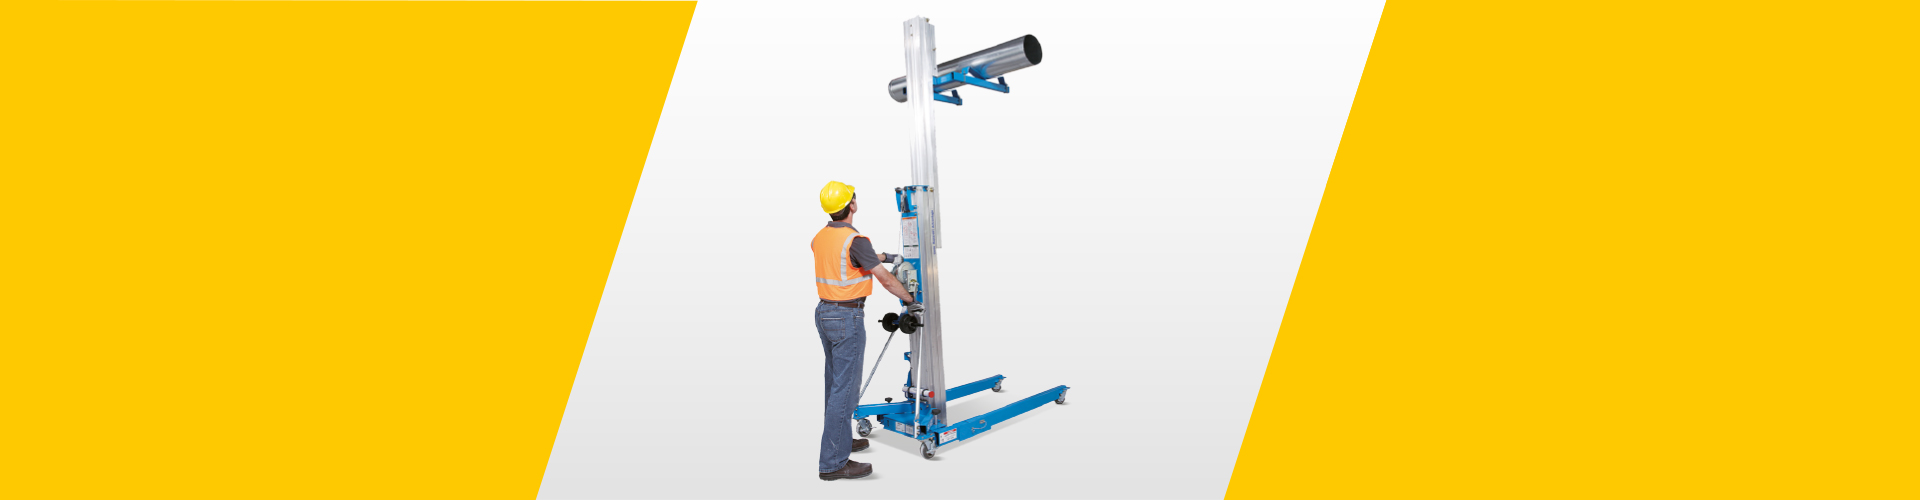 In Access, Non-Mechanical, Lifting & Handling Equipment